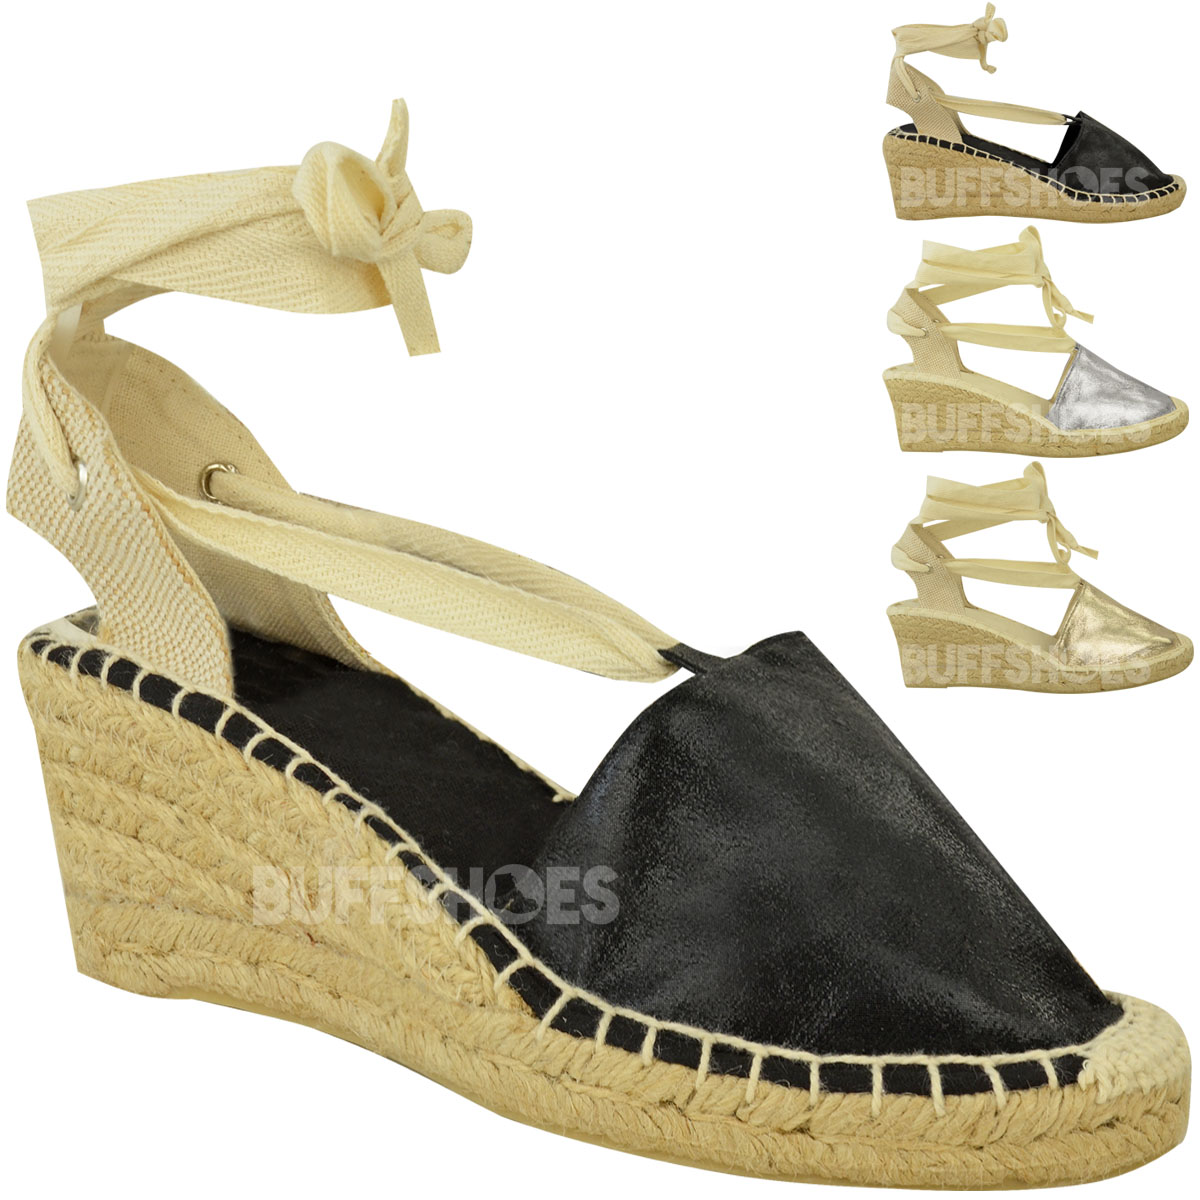 Women's espadrilles: Comfy and effortlessly cool It is definitely the air of effortless chic that makes us love this year's designer espadrilles so much. Once, flat espadrilles .